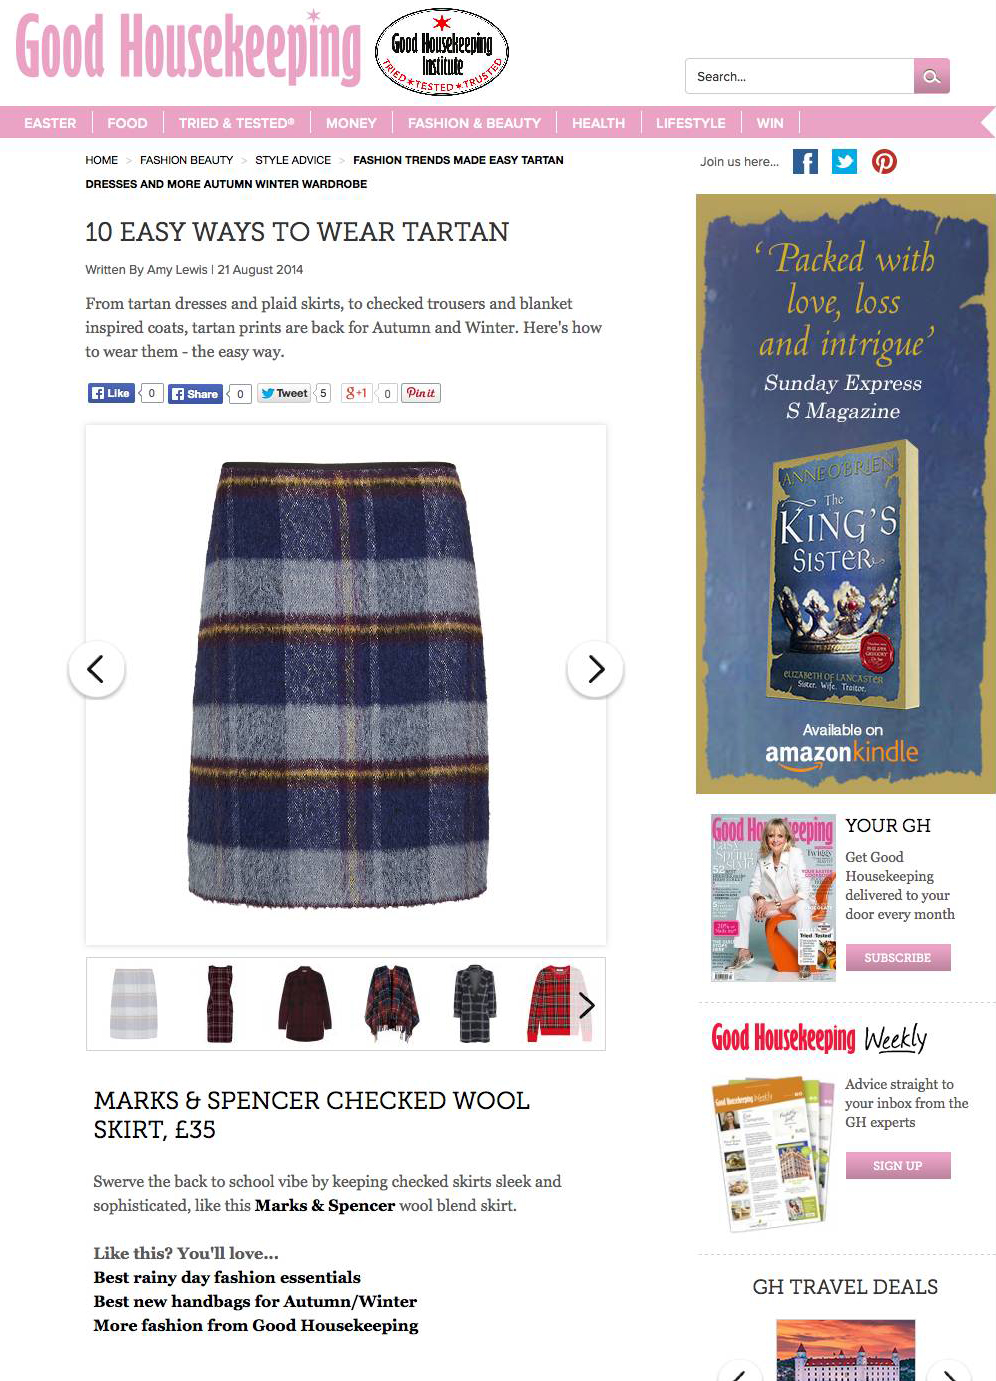 How_to_wear_the_tartan_fashion_trend_-_Style_Advice_-_Good_Housekeeping_-_2015-03-17_22.00.00.png